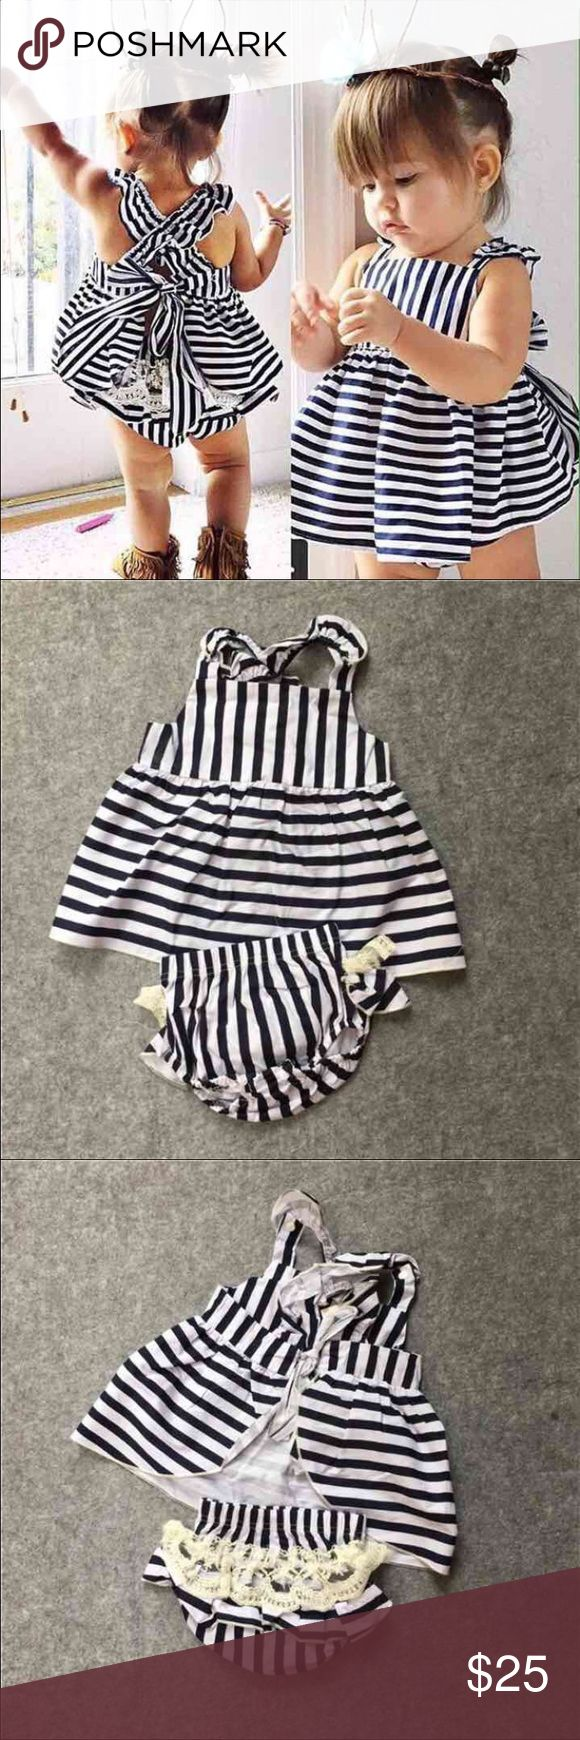 Striped Baby Girl Fashion Outfit New never worn baby girl striped outfit. Back is an open back tie up top and matching diaper cover bottom has lace on the butt. Soooo cute! It's too big for my daughter and she has too many clothes so I'm getting rid of it. Size 12-18 months. My loss is your gain. This outfit is too cute and trendy! Matching Sets